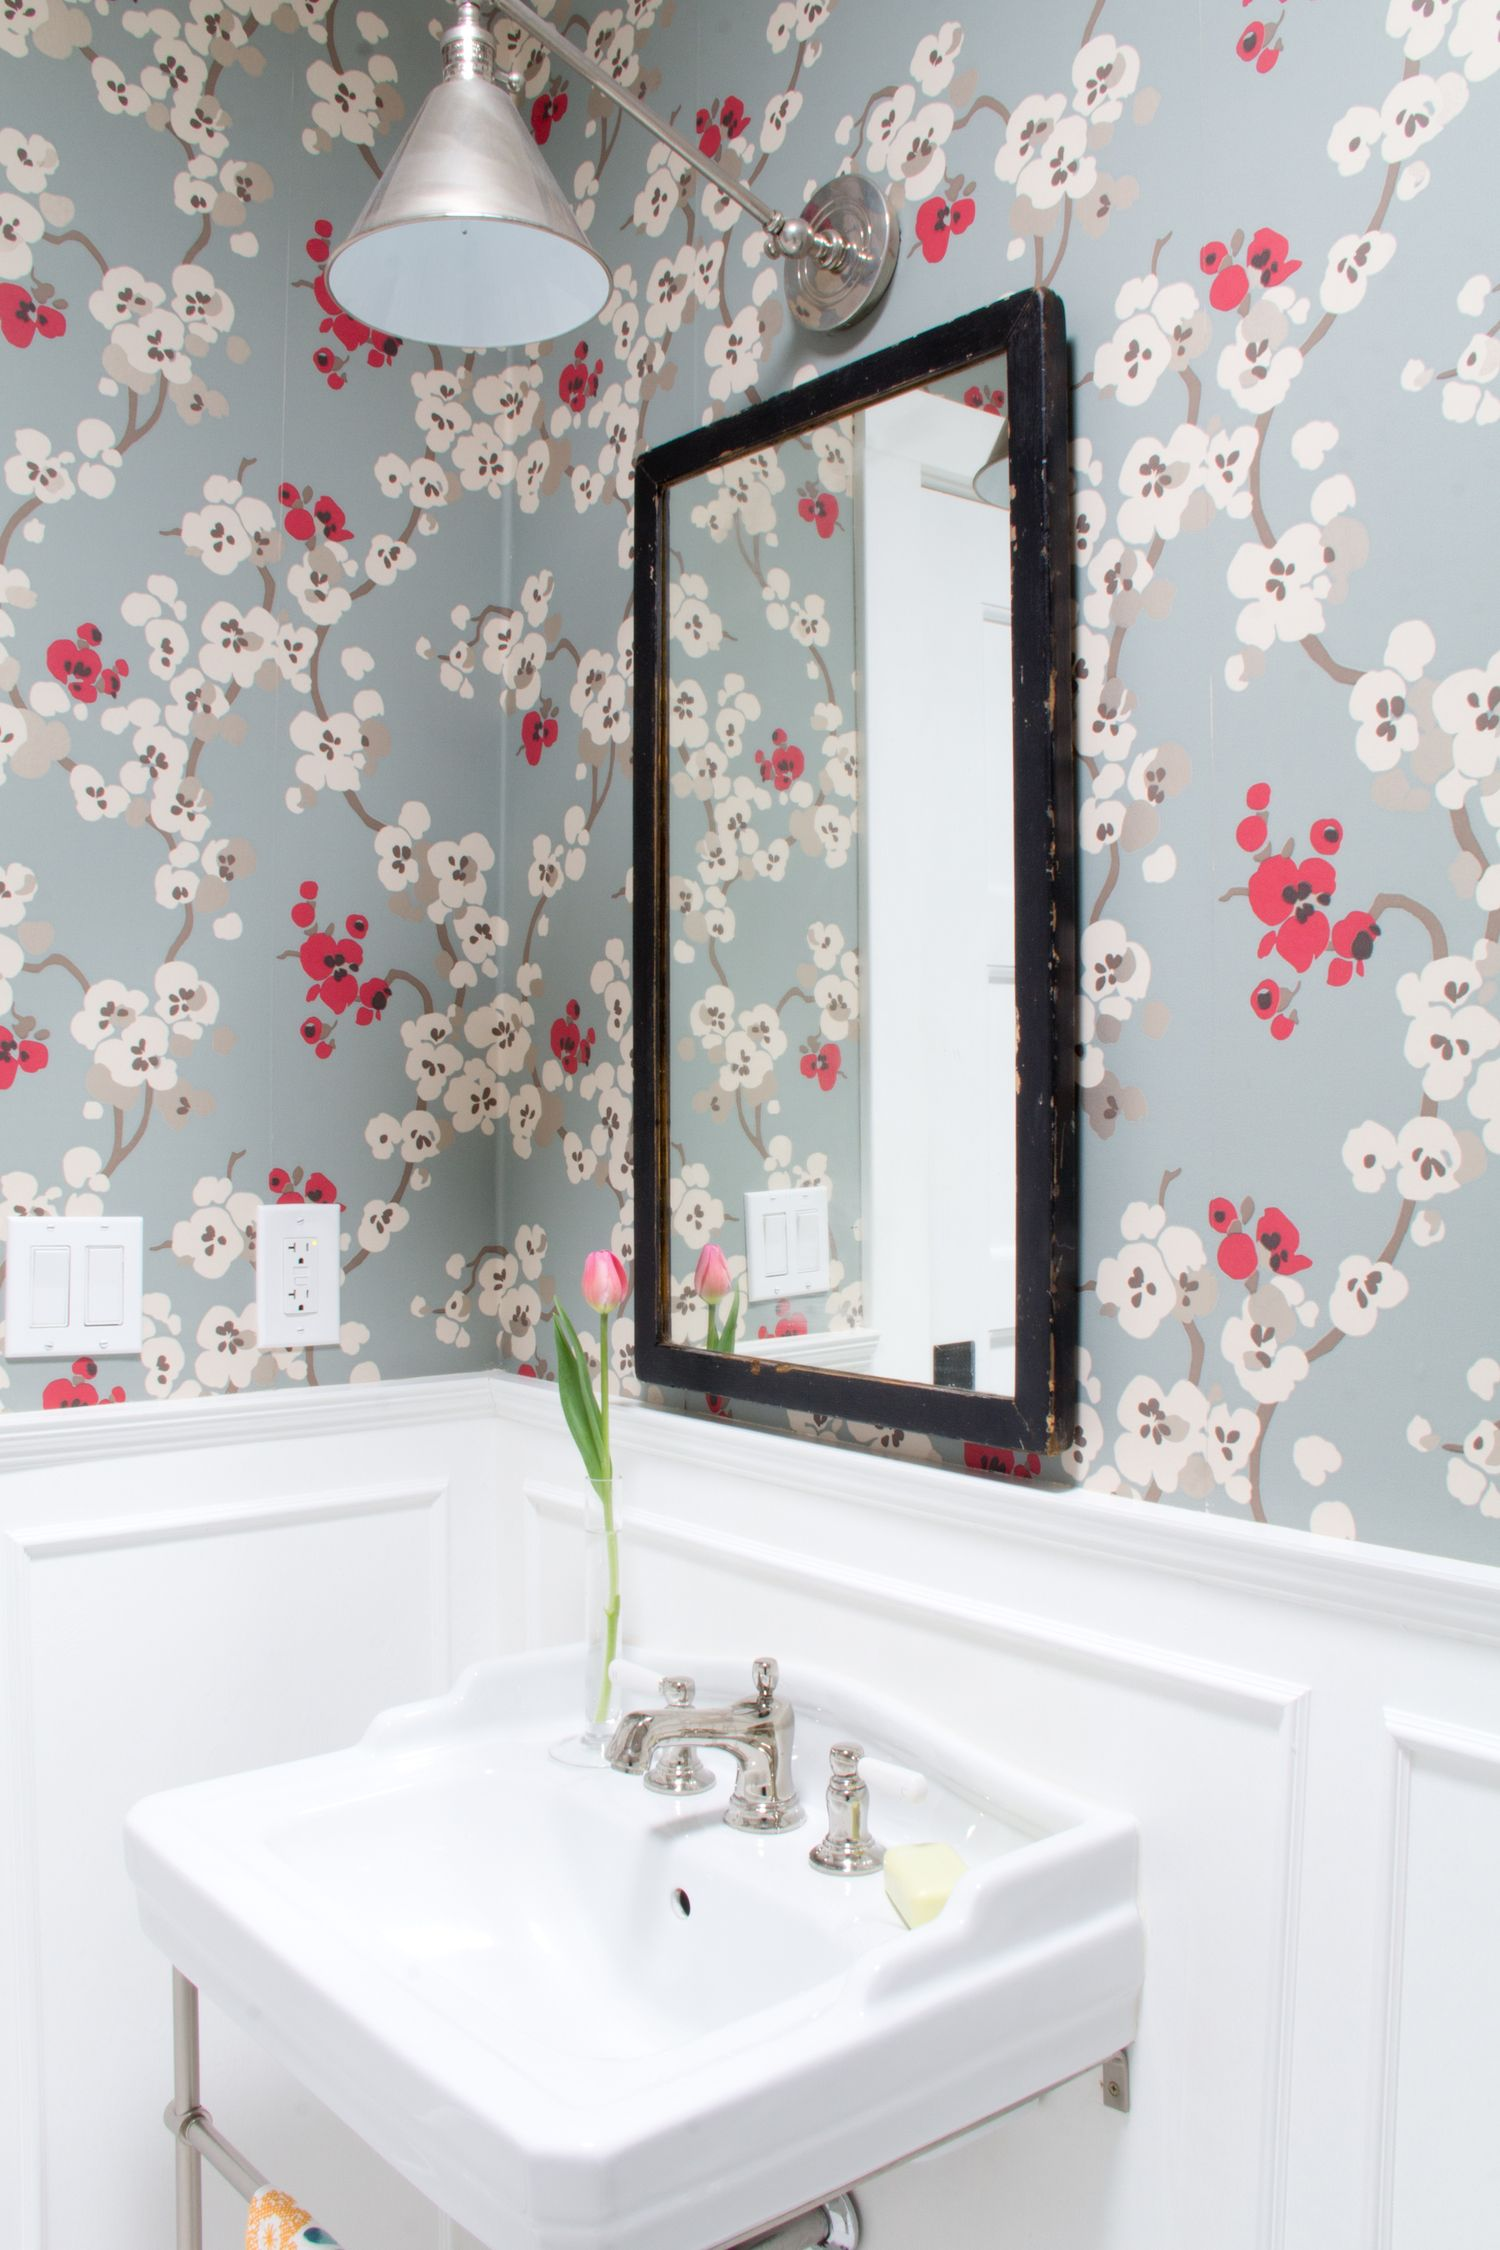 22 Floral Bathroom Designs Decorating Ideas: White Walls With Decorative Molding And Floral Wallpaper